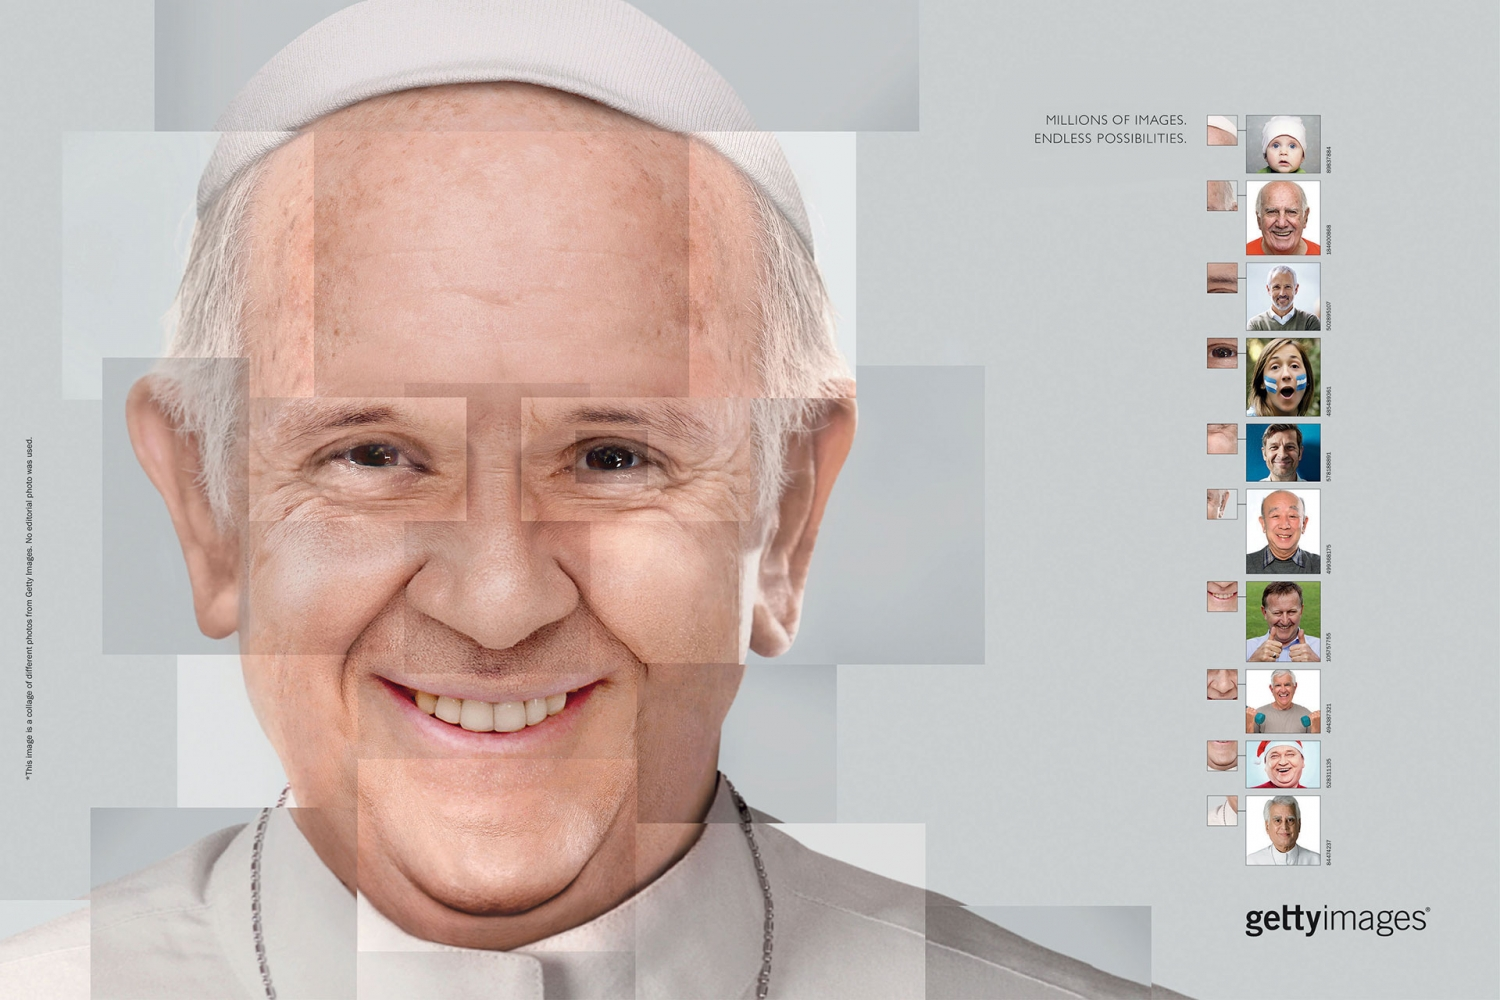 Getty Images - Endless Possibilities - Pope Francis